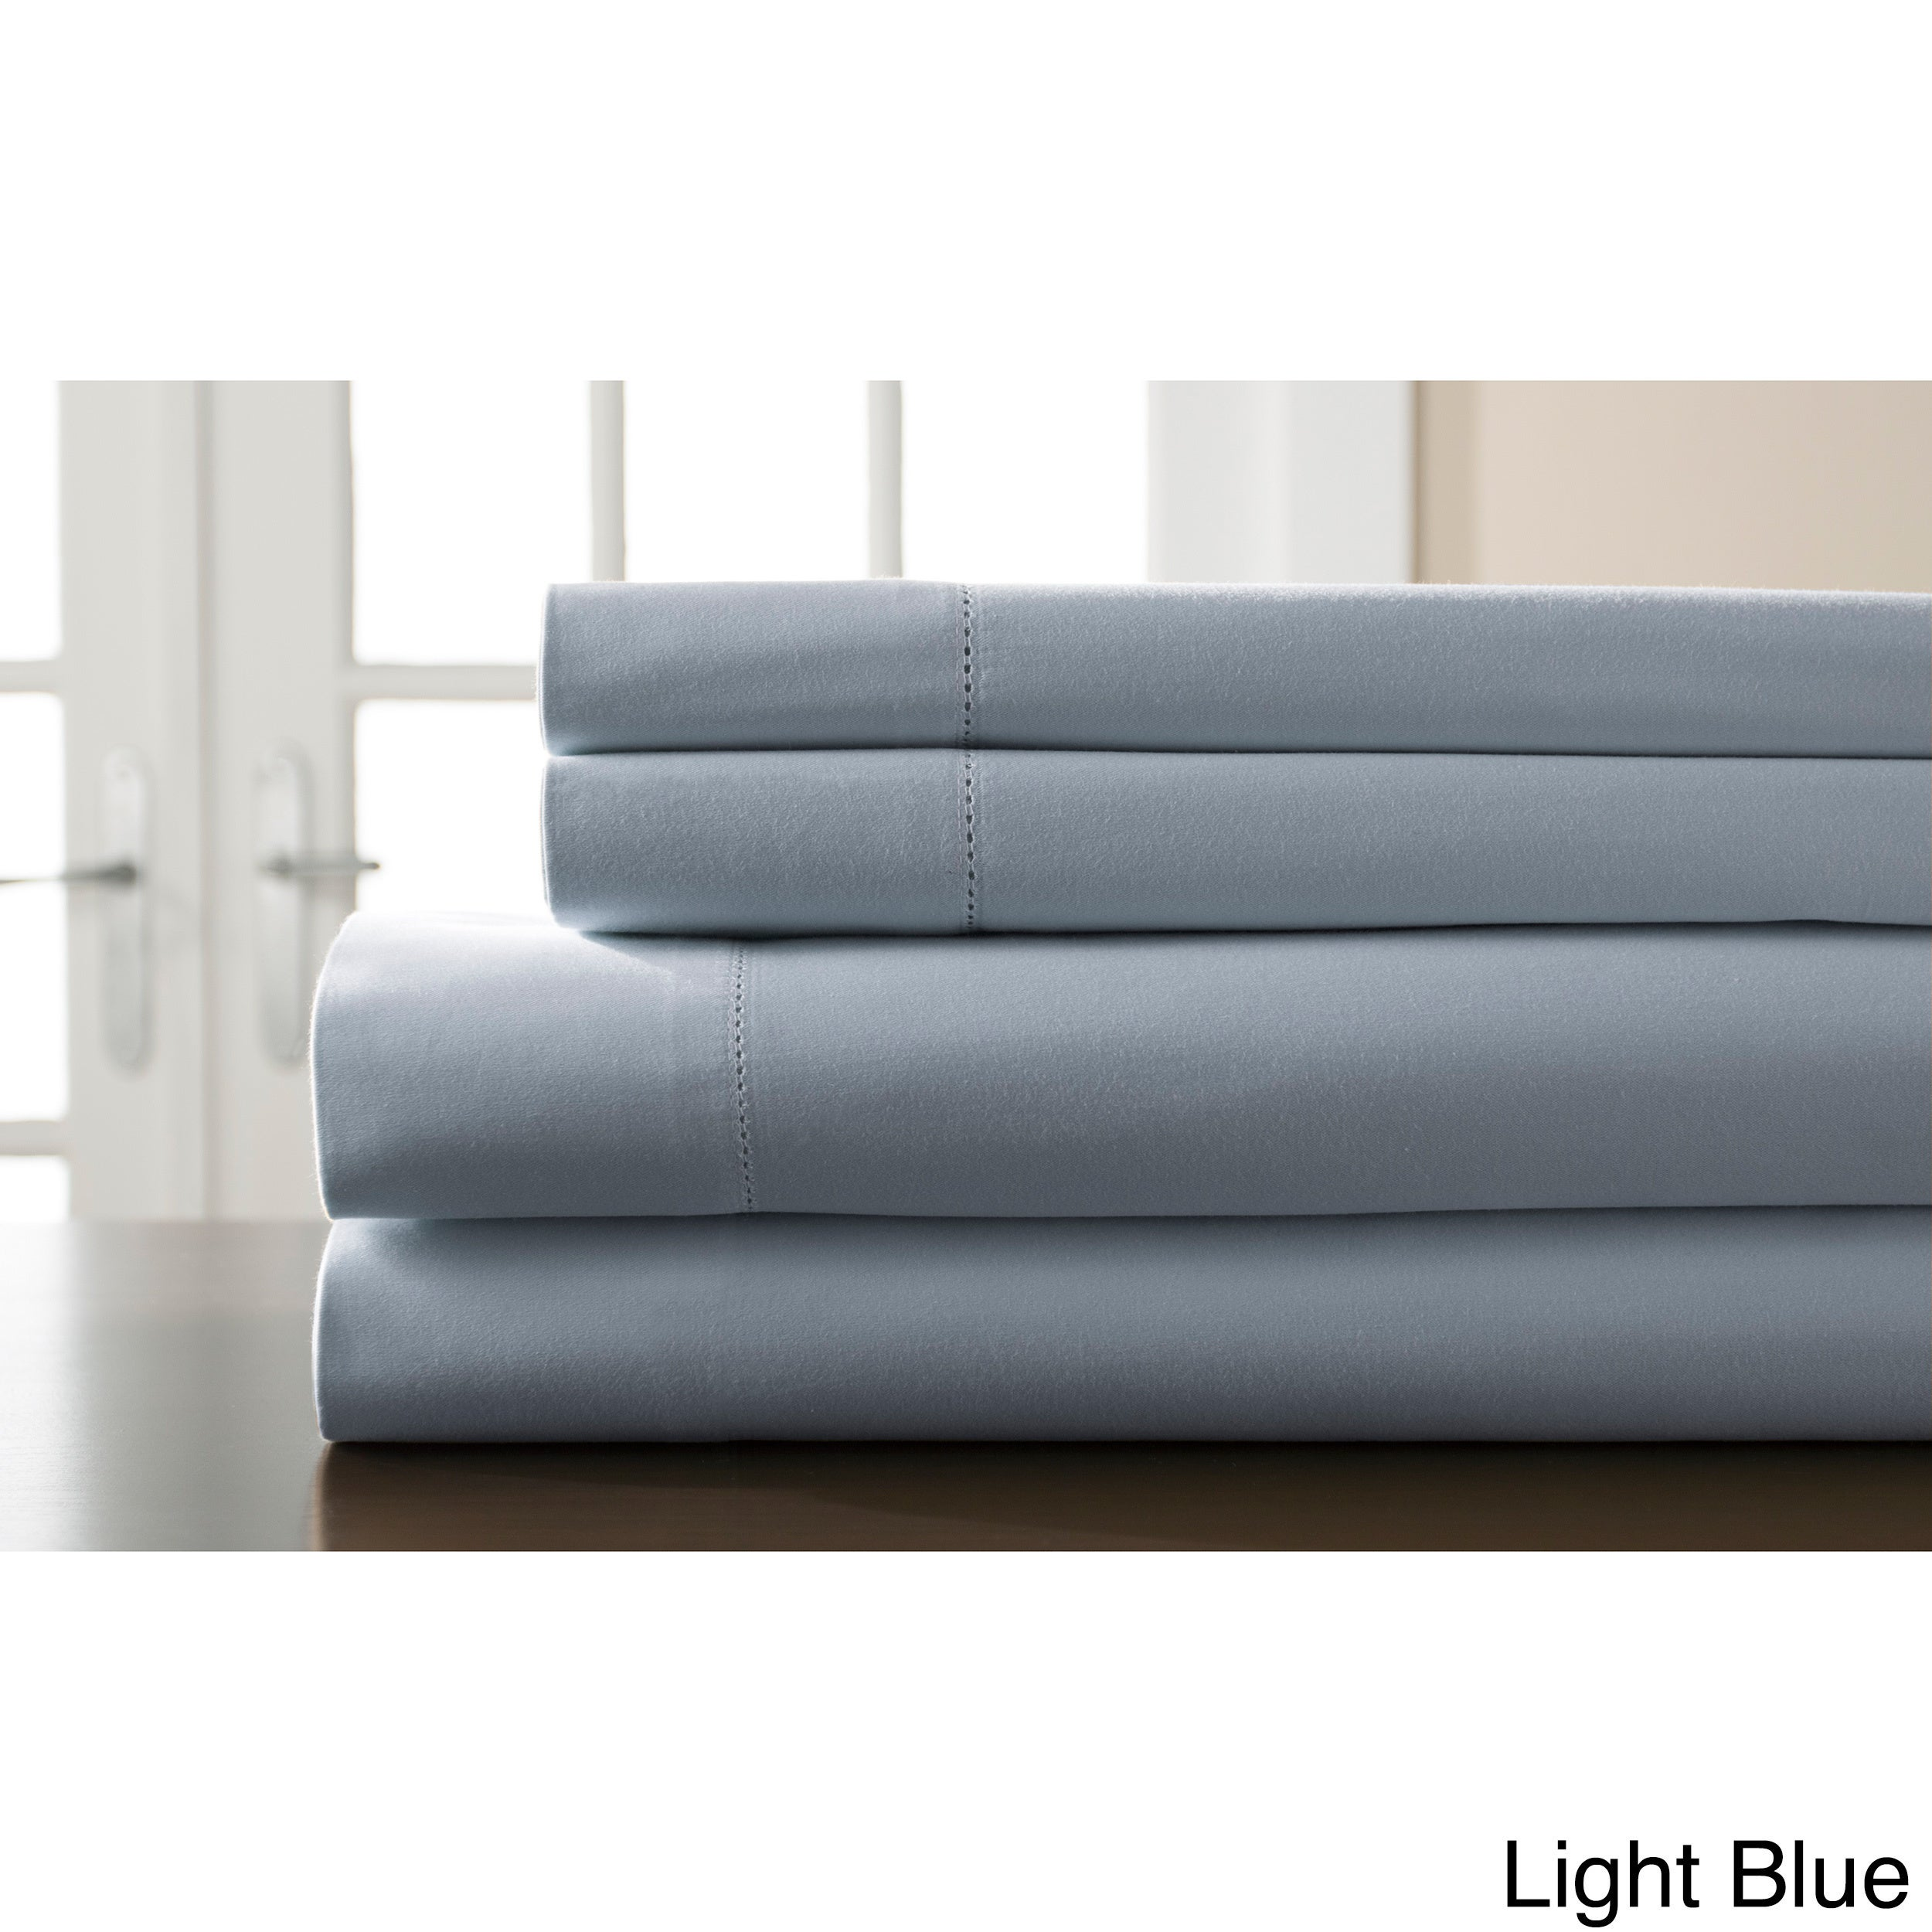 Genial Shop Hemstitch 400 Thread Count Cotton Sateen Weave Solid Color Sheet Set    On Sale   Free Shipping On Orders Over $45   Overstock.com   11402894